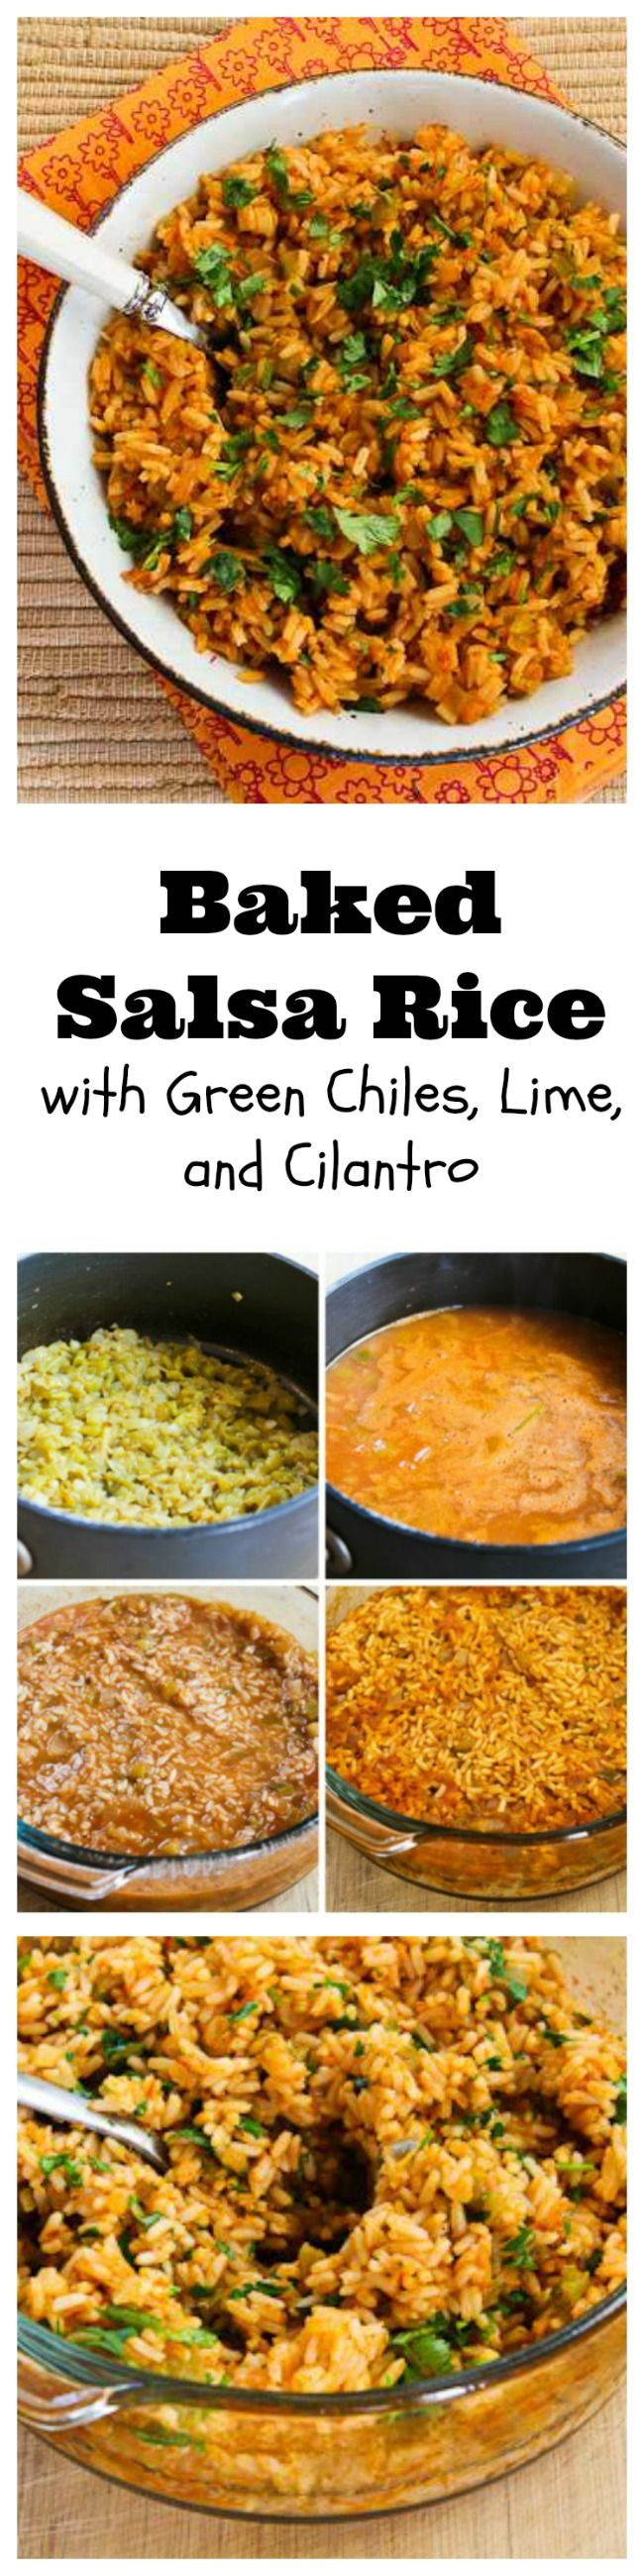 for this Baked Salsa Rice with Green Chiles, Lime, and Cilantro ...